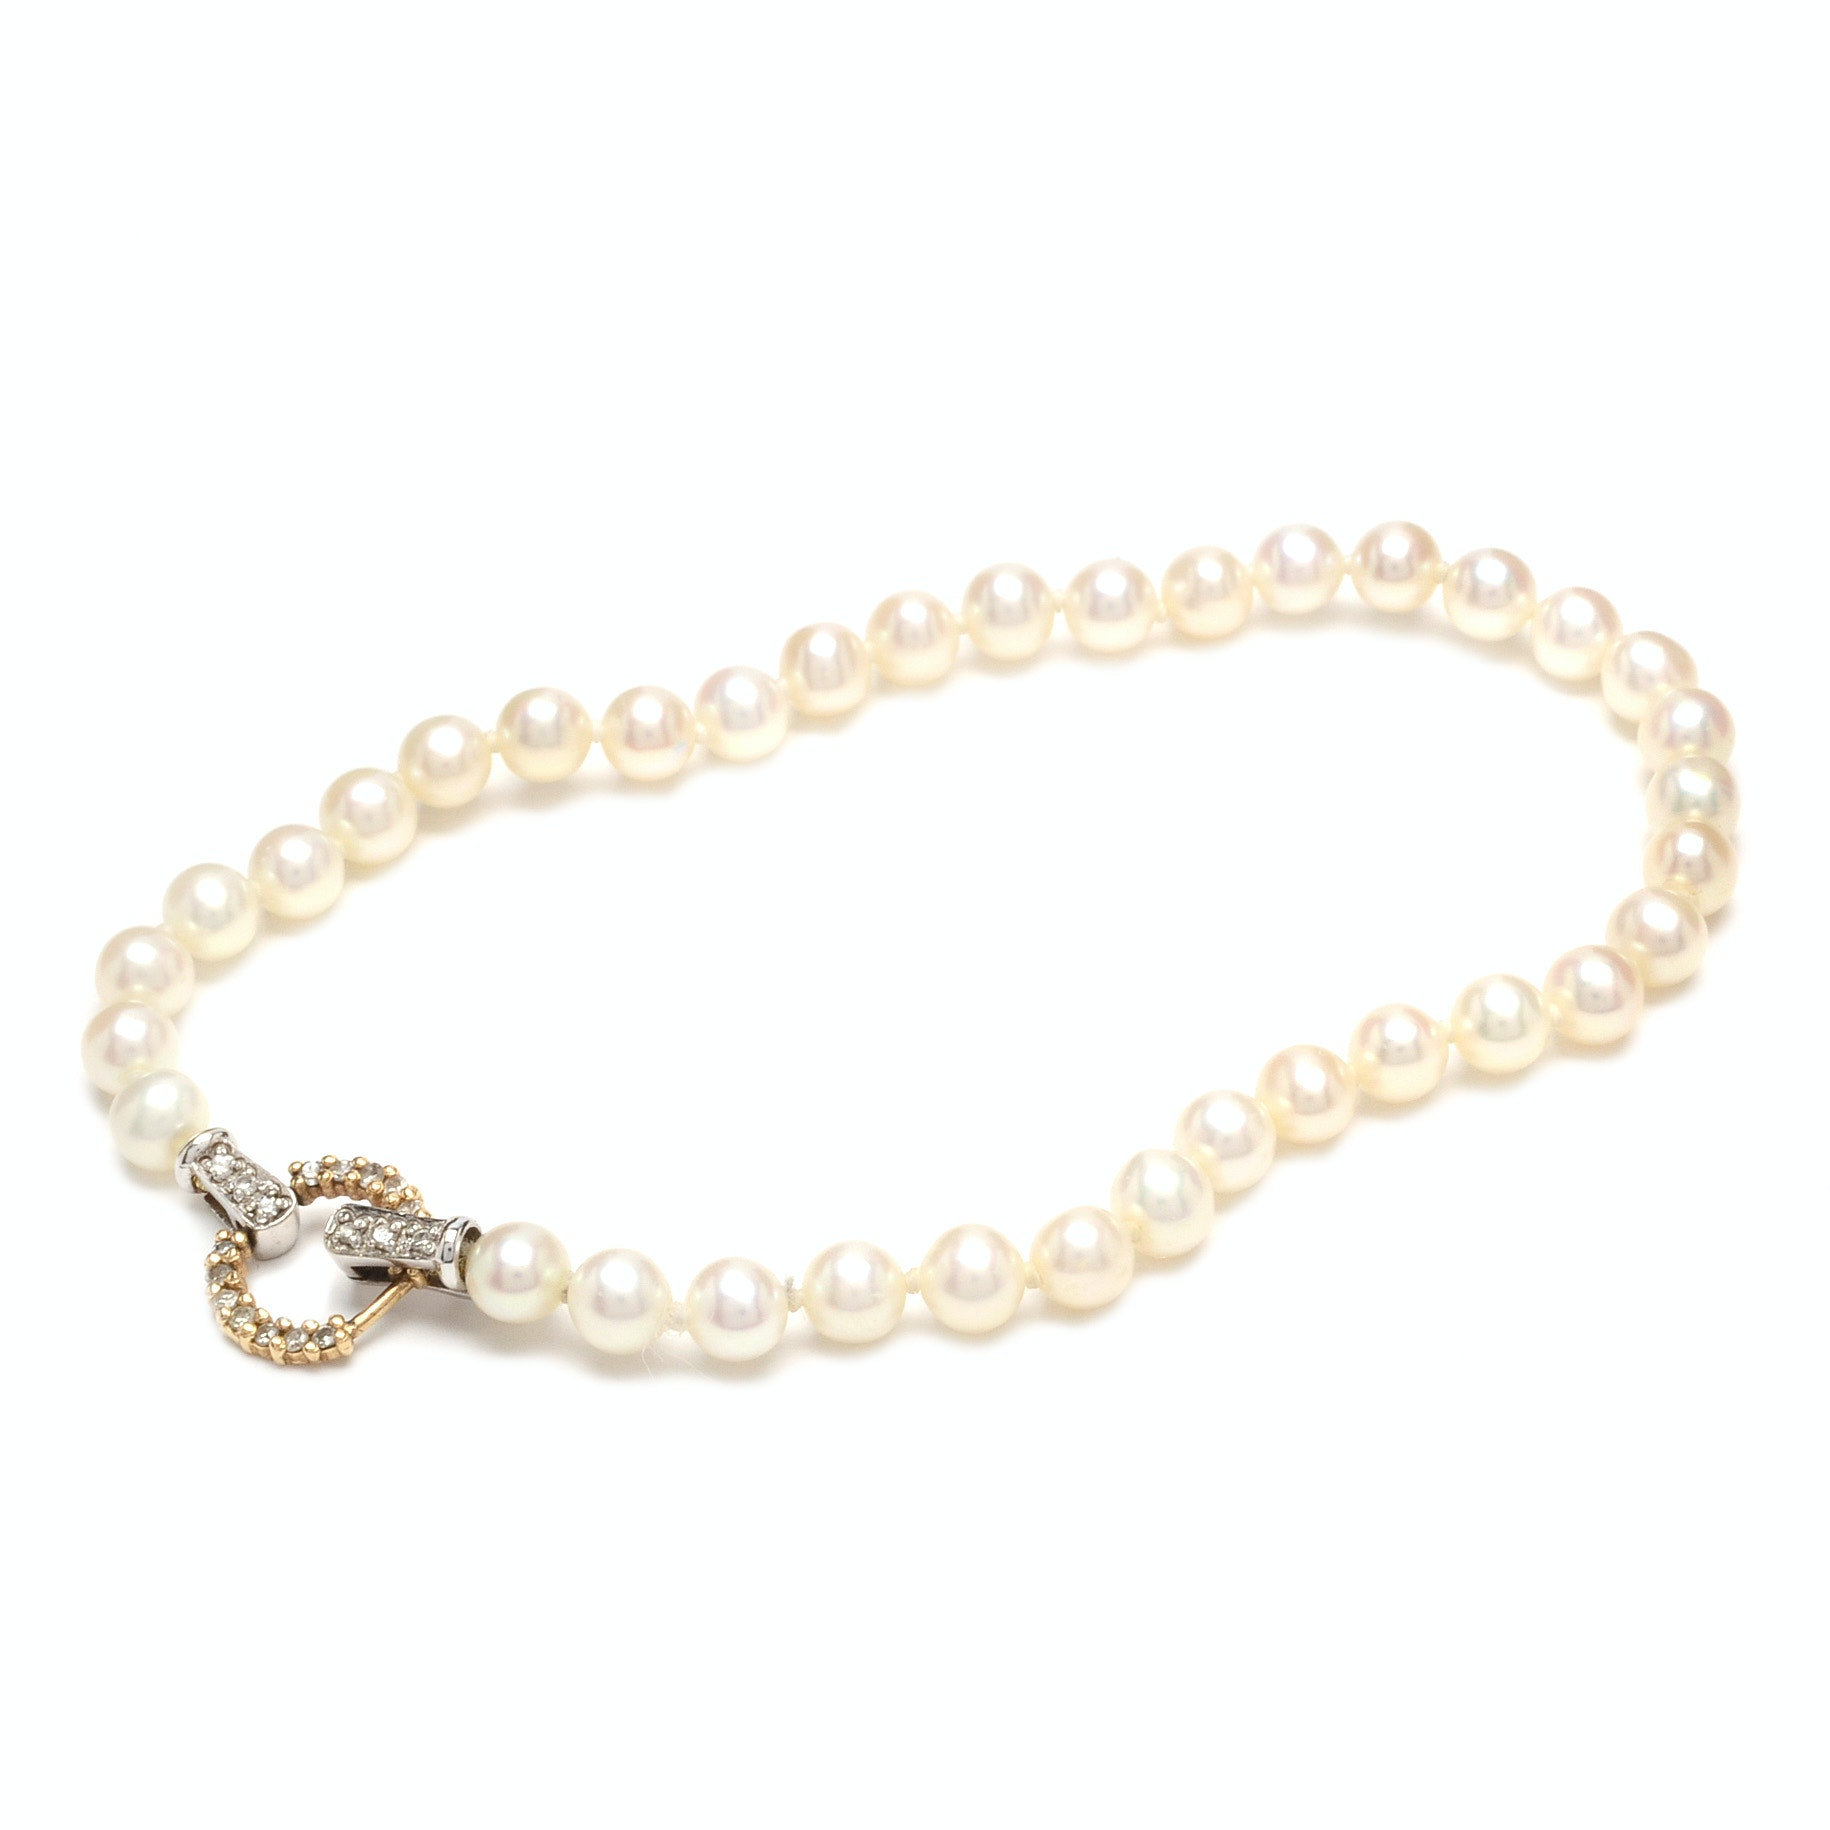 Pearl Bracelet with 14K Two-Tone Gold and Diamond Clasp